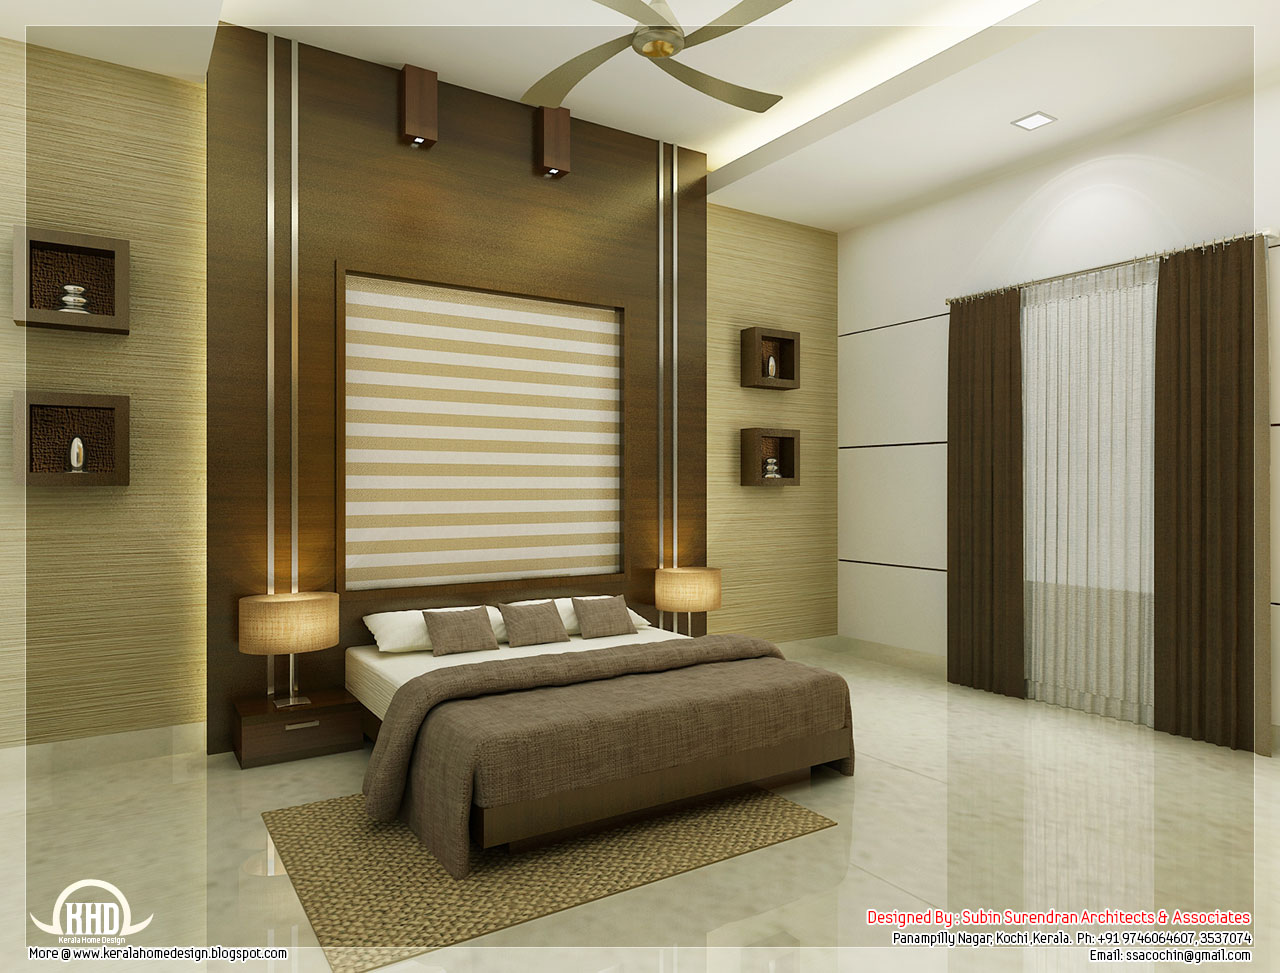 Remarkable Bedroom interior design 1280 x 973 · 226 kB · jpeg